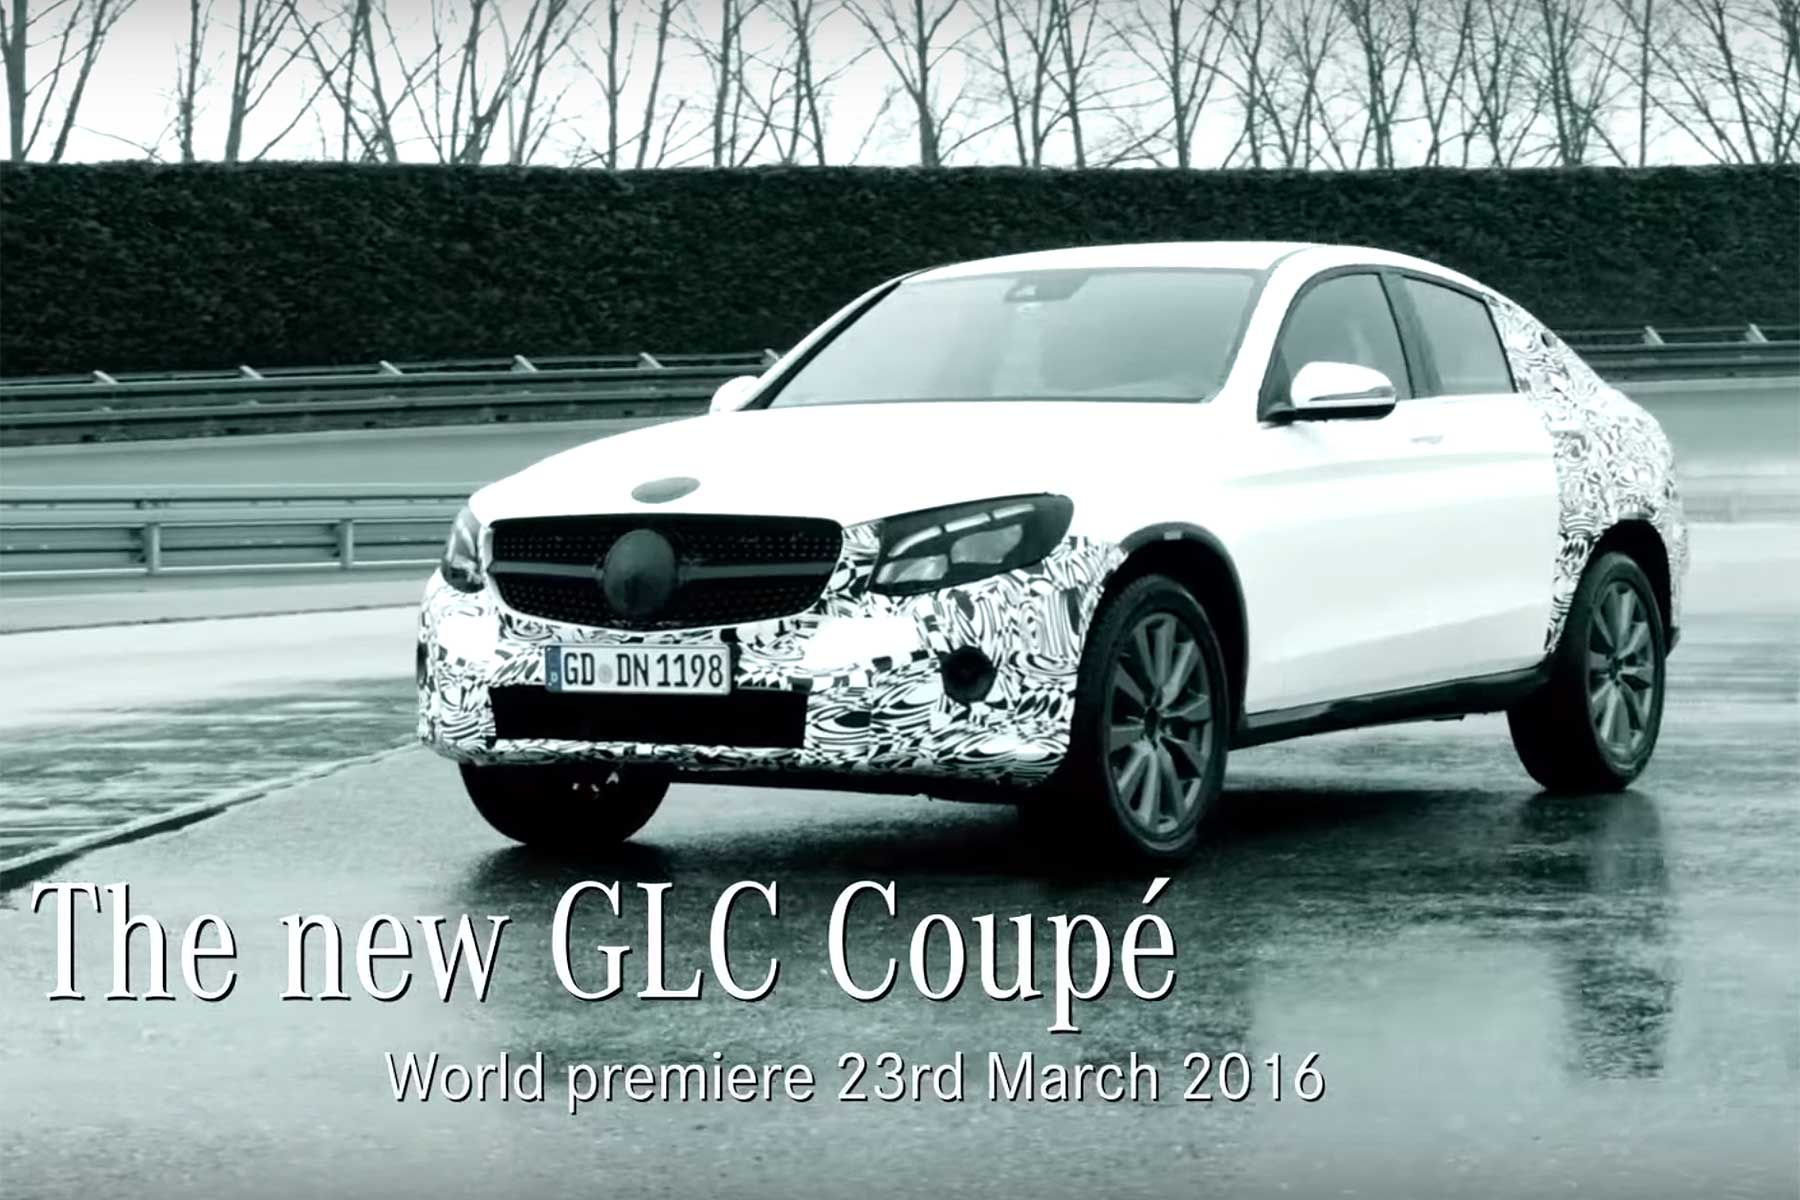 Mercedes-Benz GLC Coupe teaser